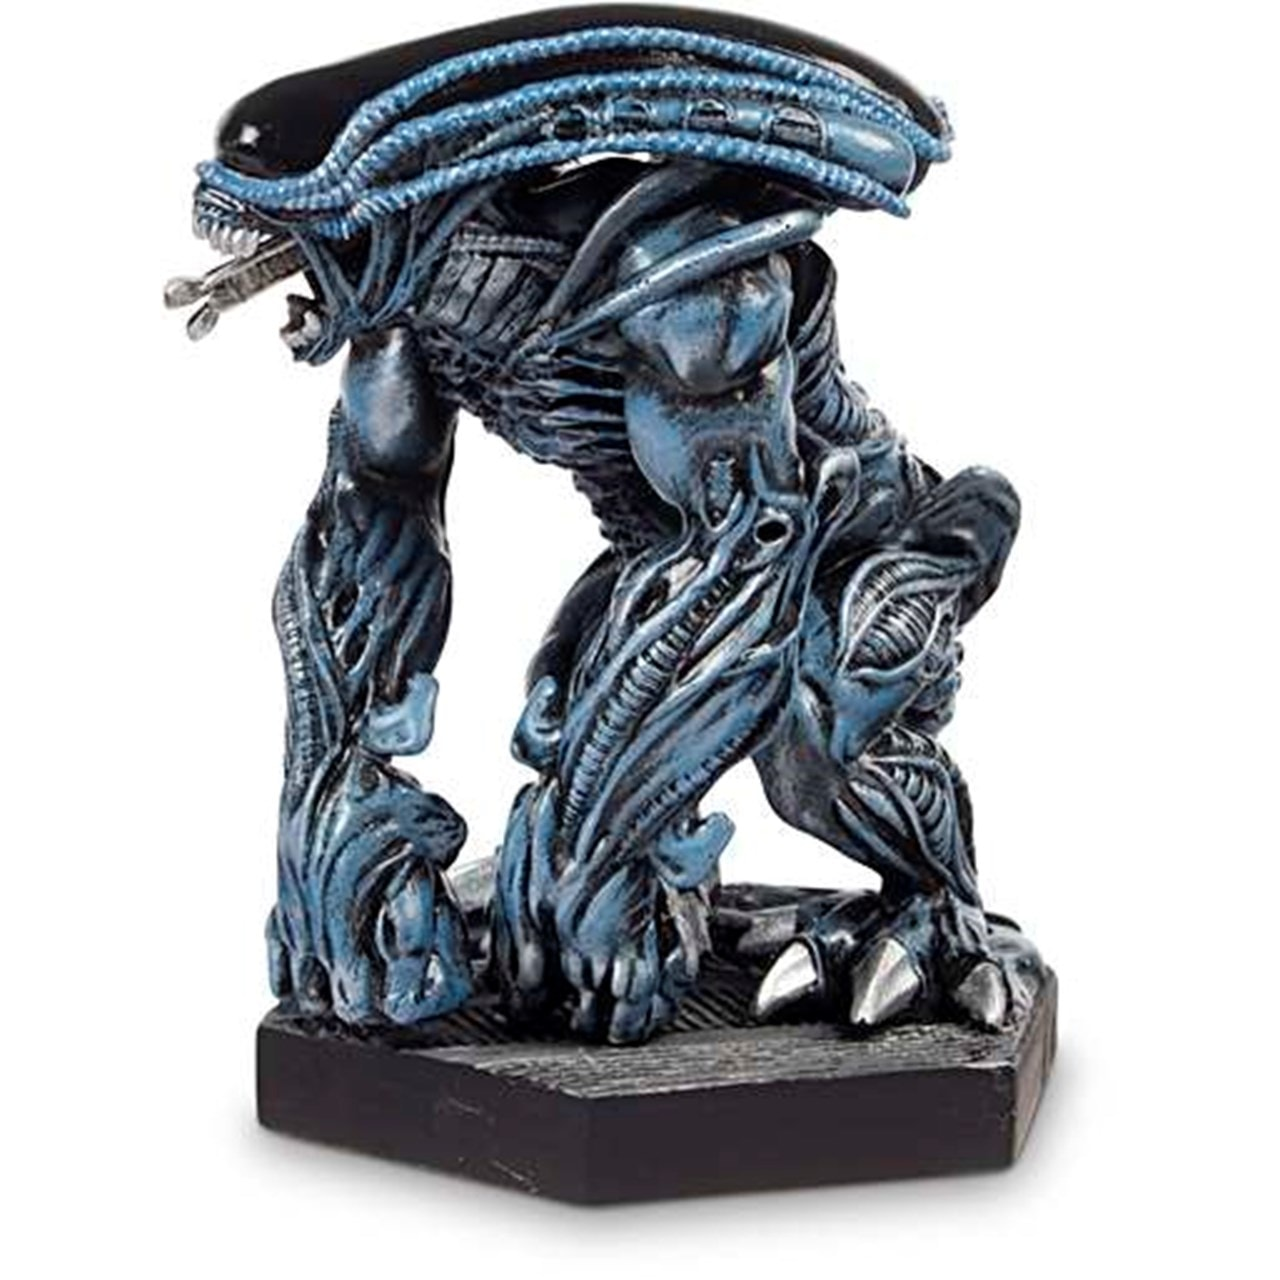 Alien: Bull And Gorilla Action Figures - 4